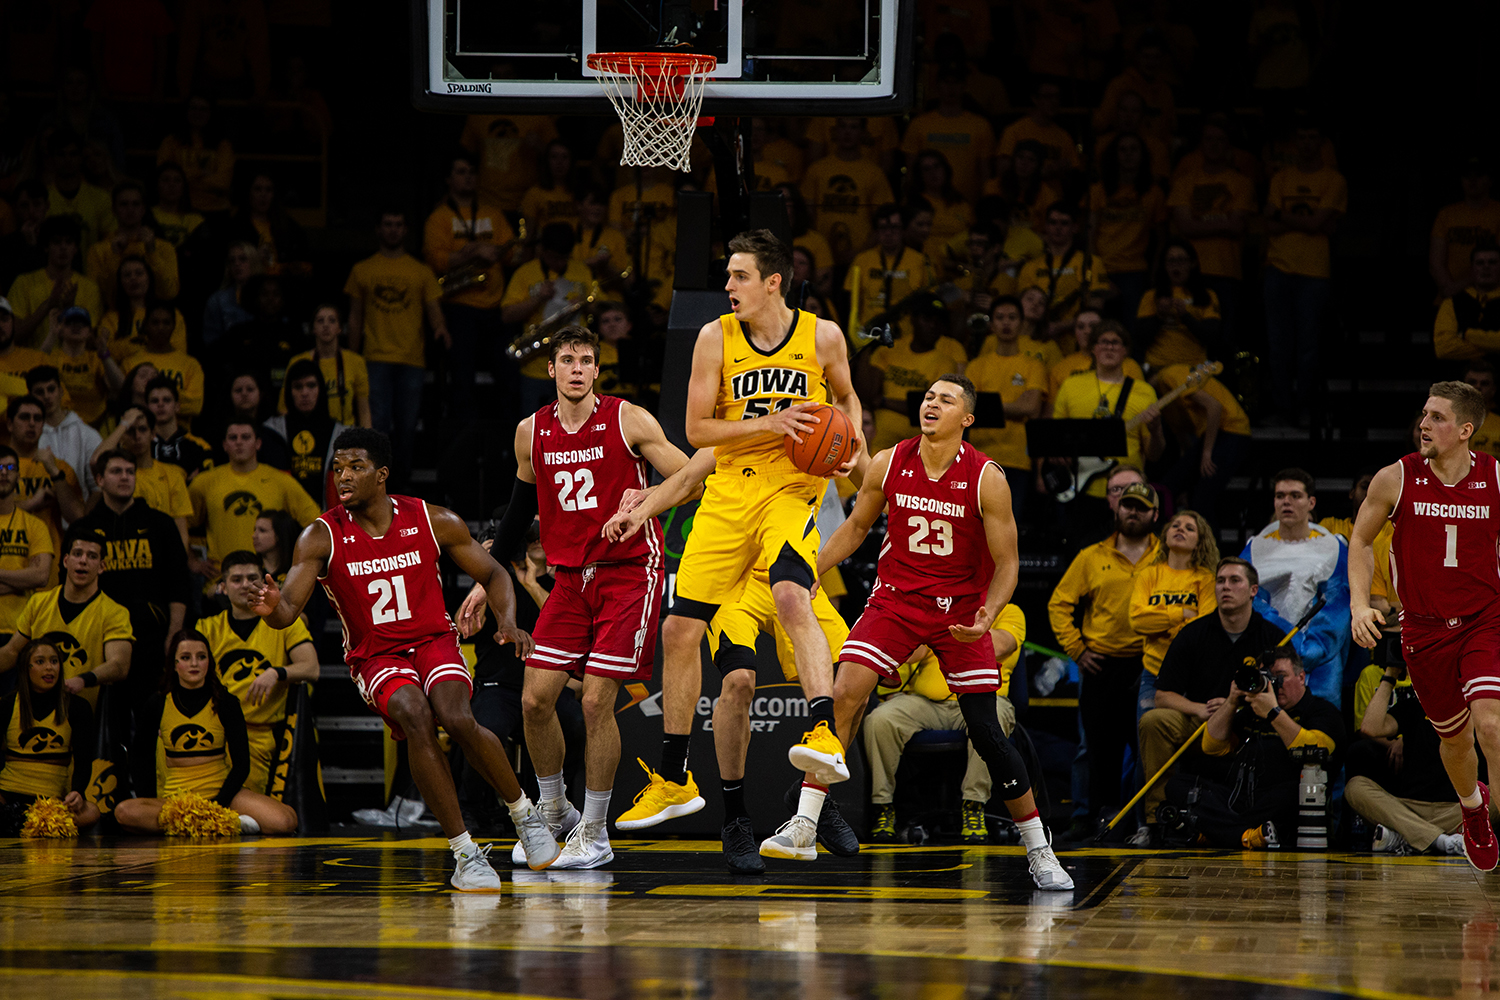 Iowa forward Nicholas Baer intercepts a pass during Iowa's game against Wisconsin at Carver-Hawkeye Arena on November 30, 2018. The Hawkeyes were defeated by the Badgers, 72-66.(Megan Nagorzanski/The Daily Iowan)